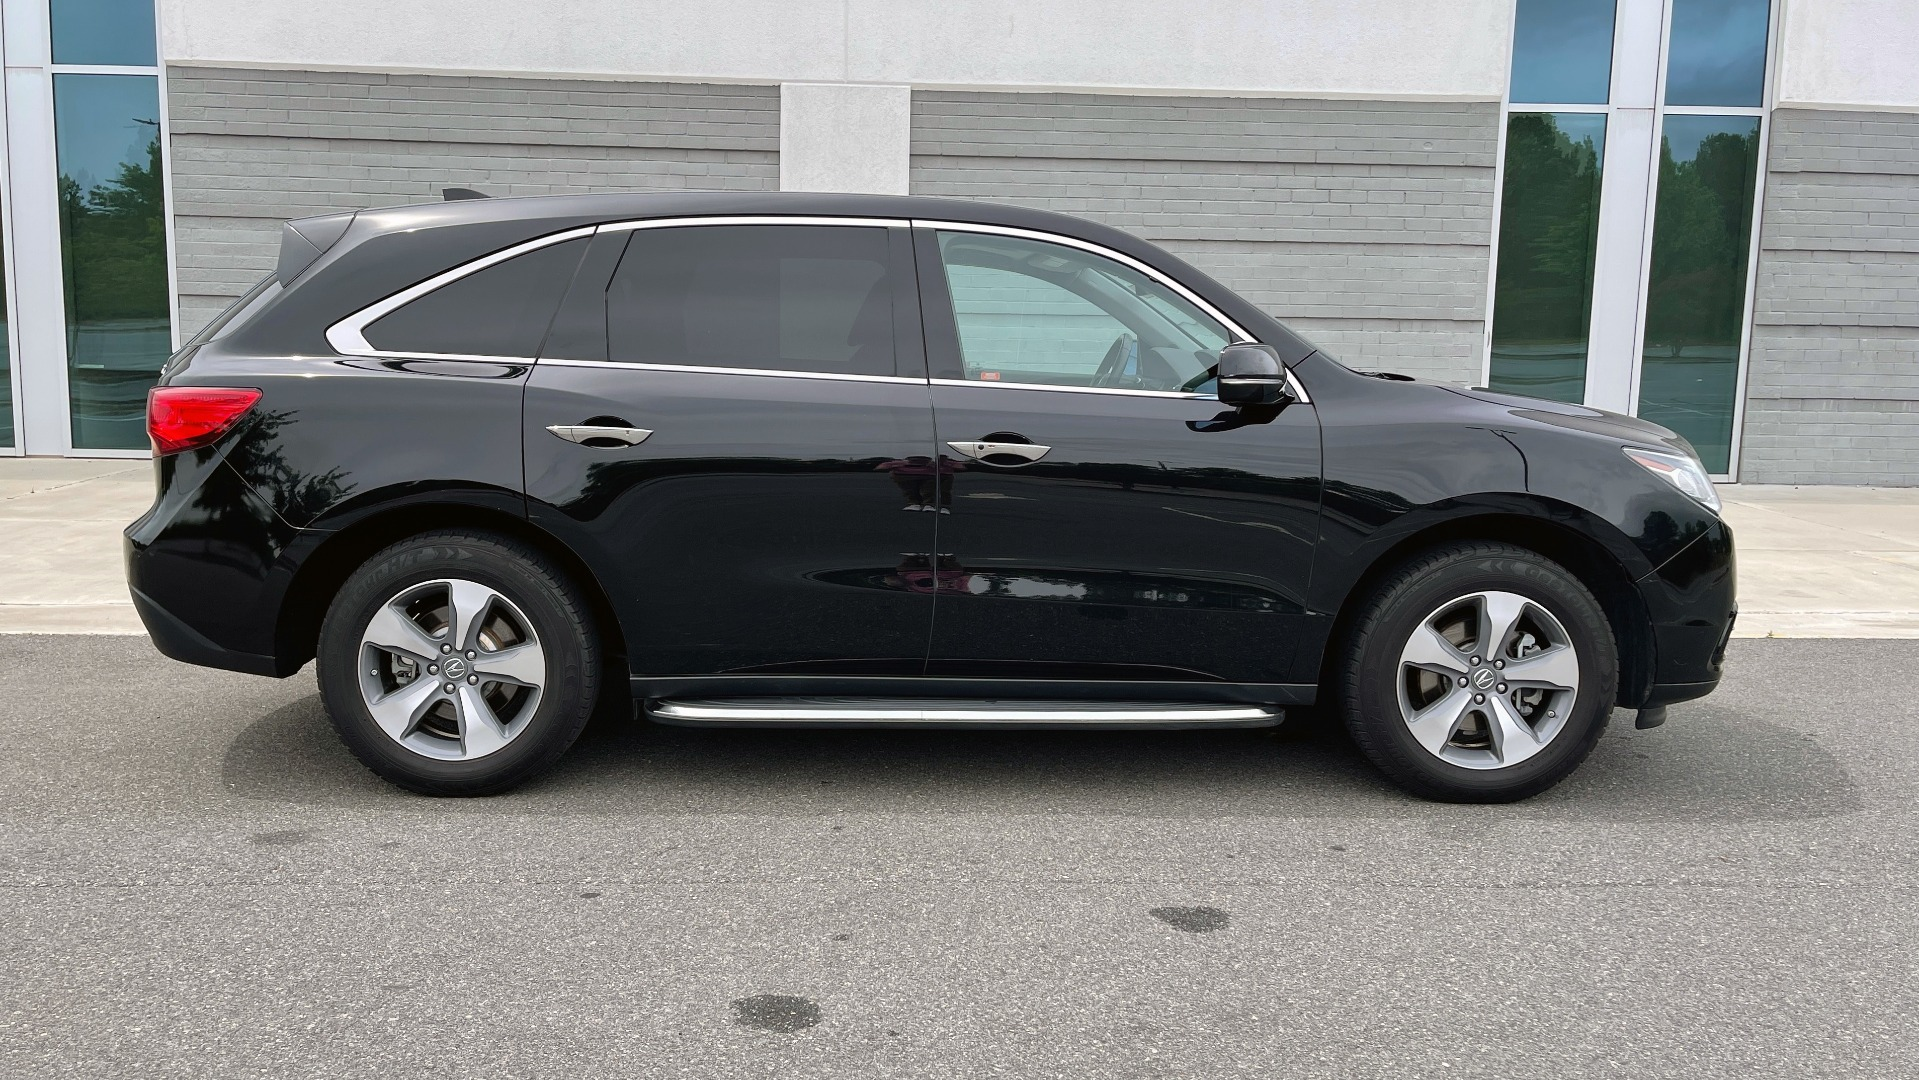 Used 2016 Acura MDX 3.5L V6 / AUTO / LEATHER / NAV / SUNROOF / 3-ROW / REARVIEW for sale $21,900 at Formula Imports in Charlotte NC 28227 7